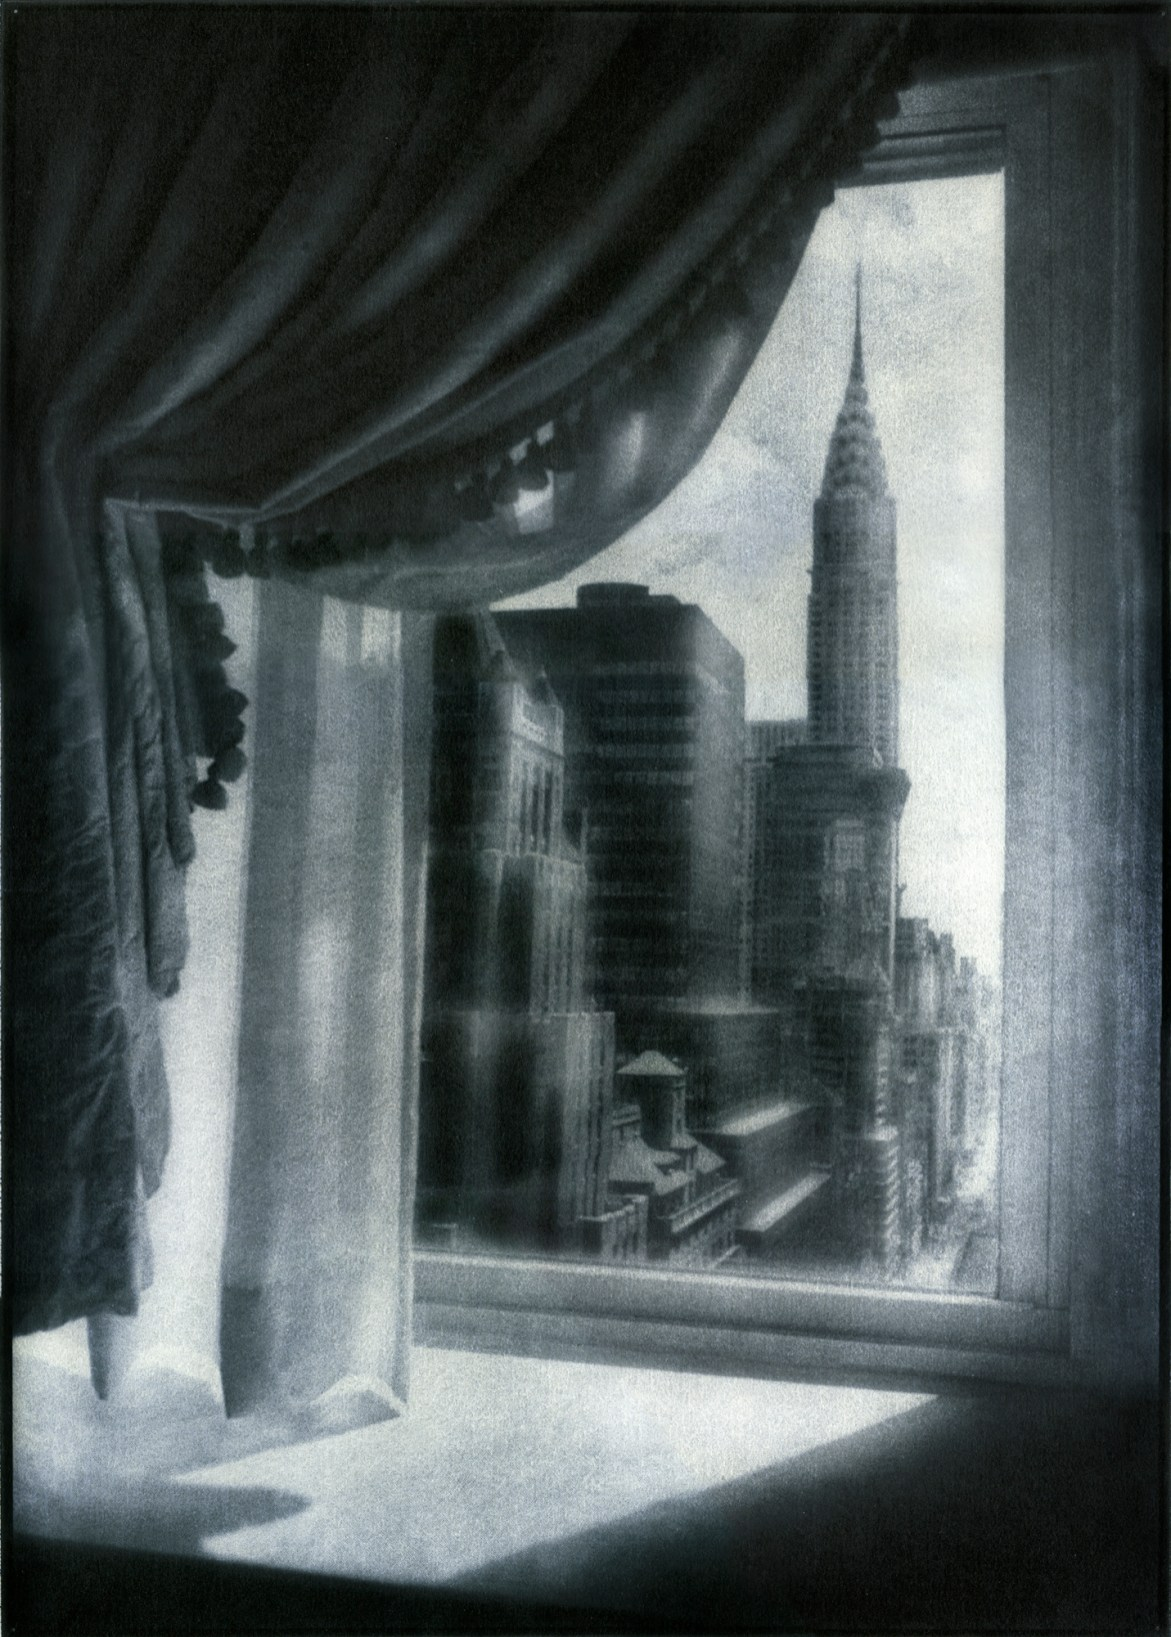 The Chrysler Building © Peter Liepke,Gum Bichromate